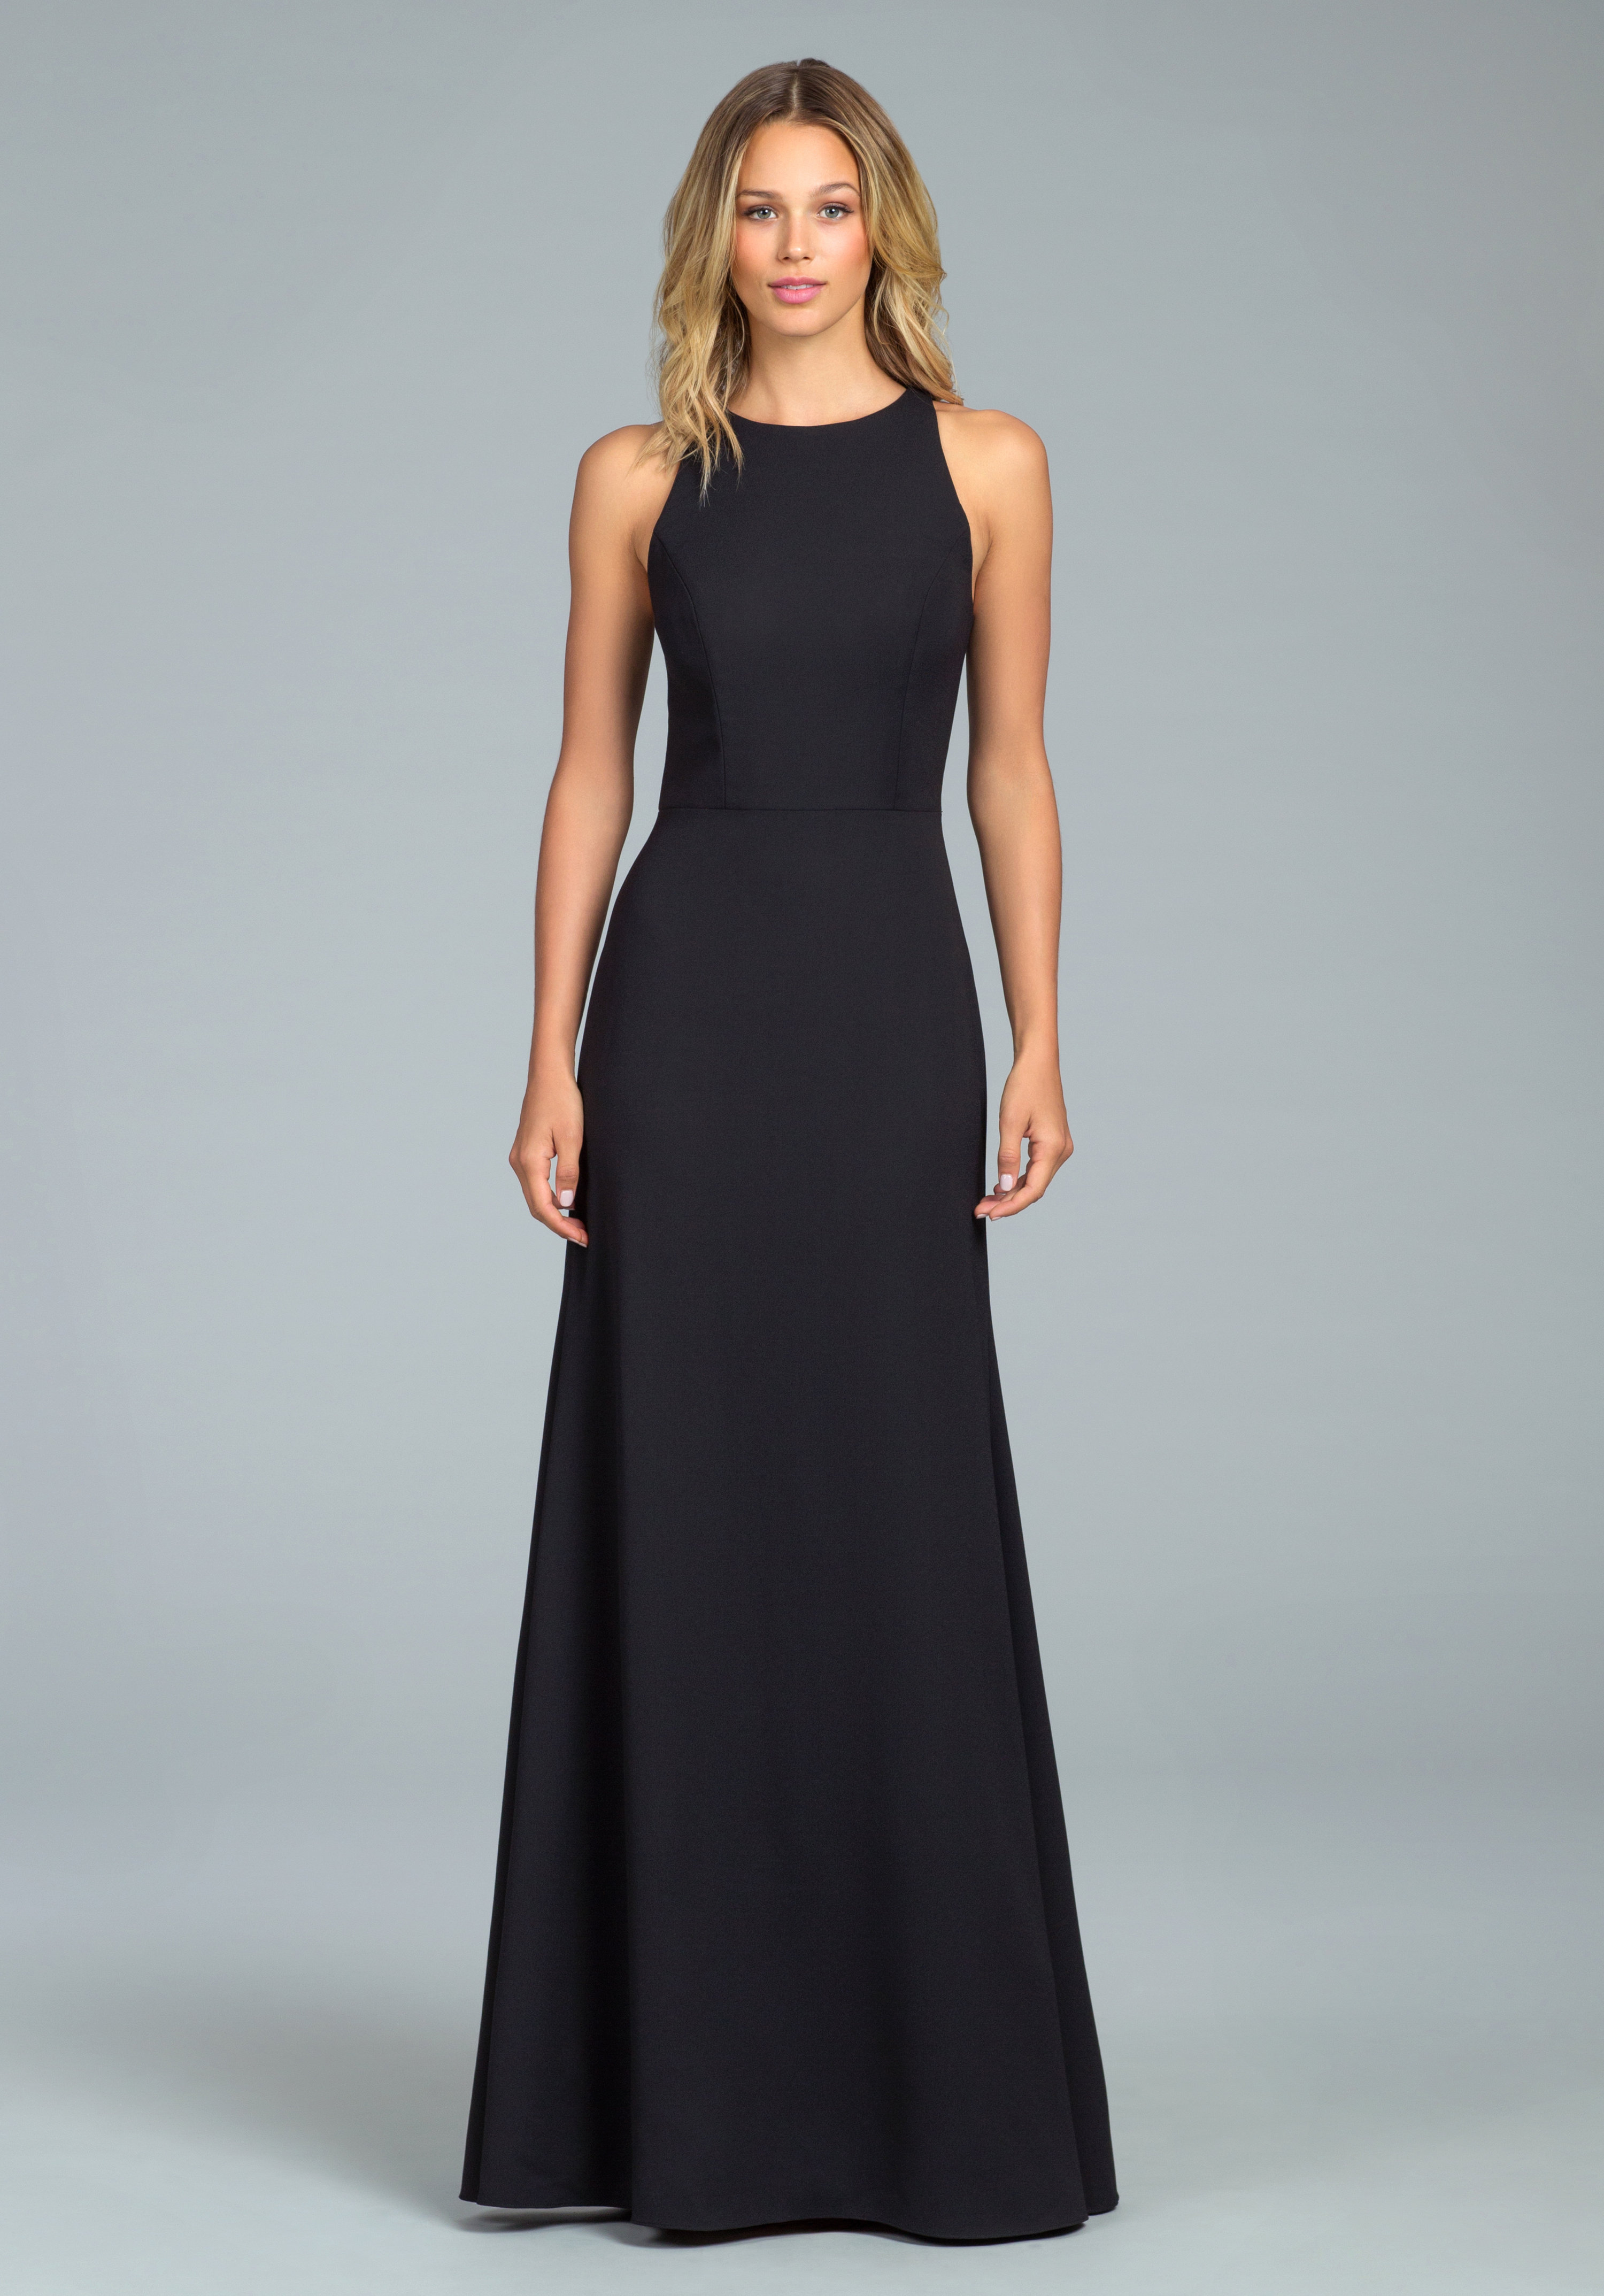 hayley-paige-occasions-bridesmaids-and-special-occasion-spring-2018-style-5816